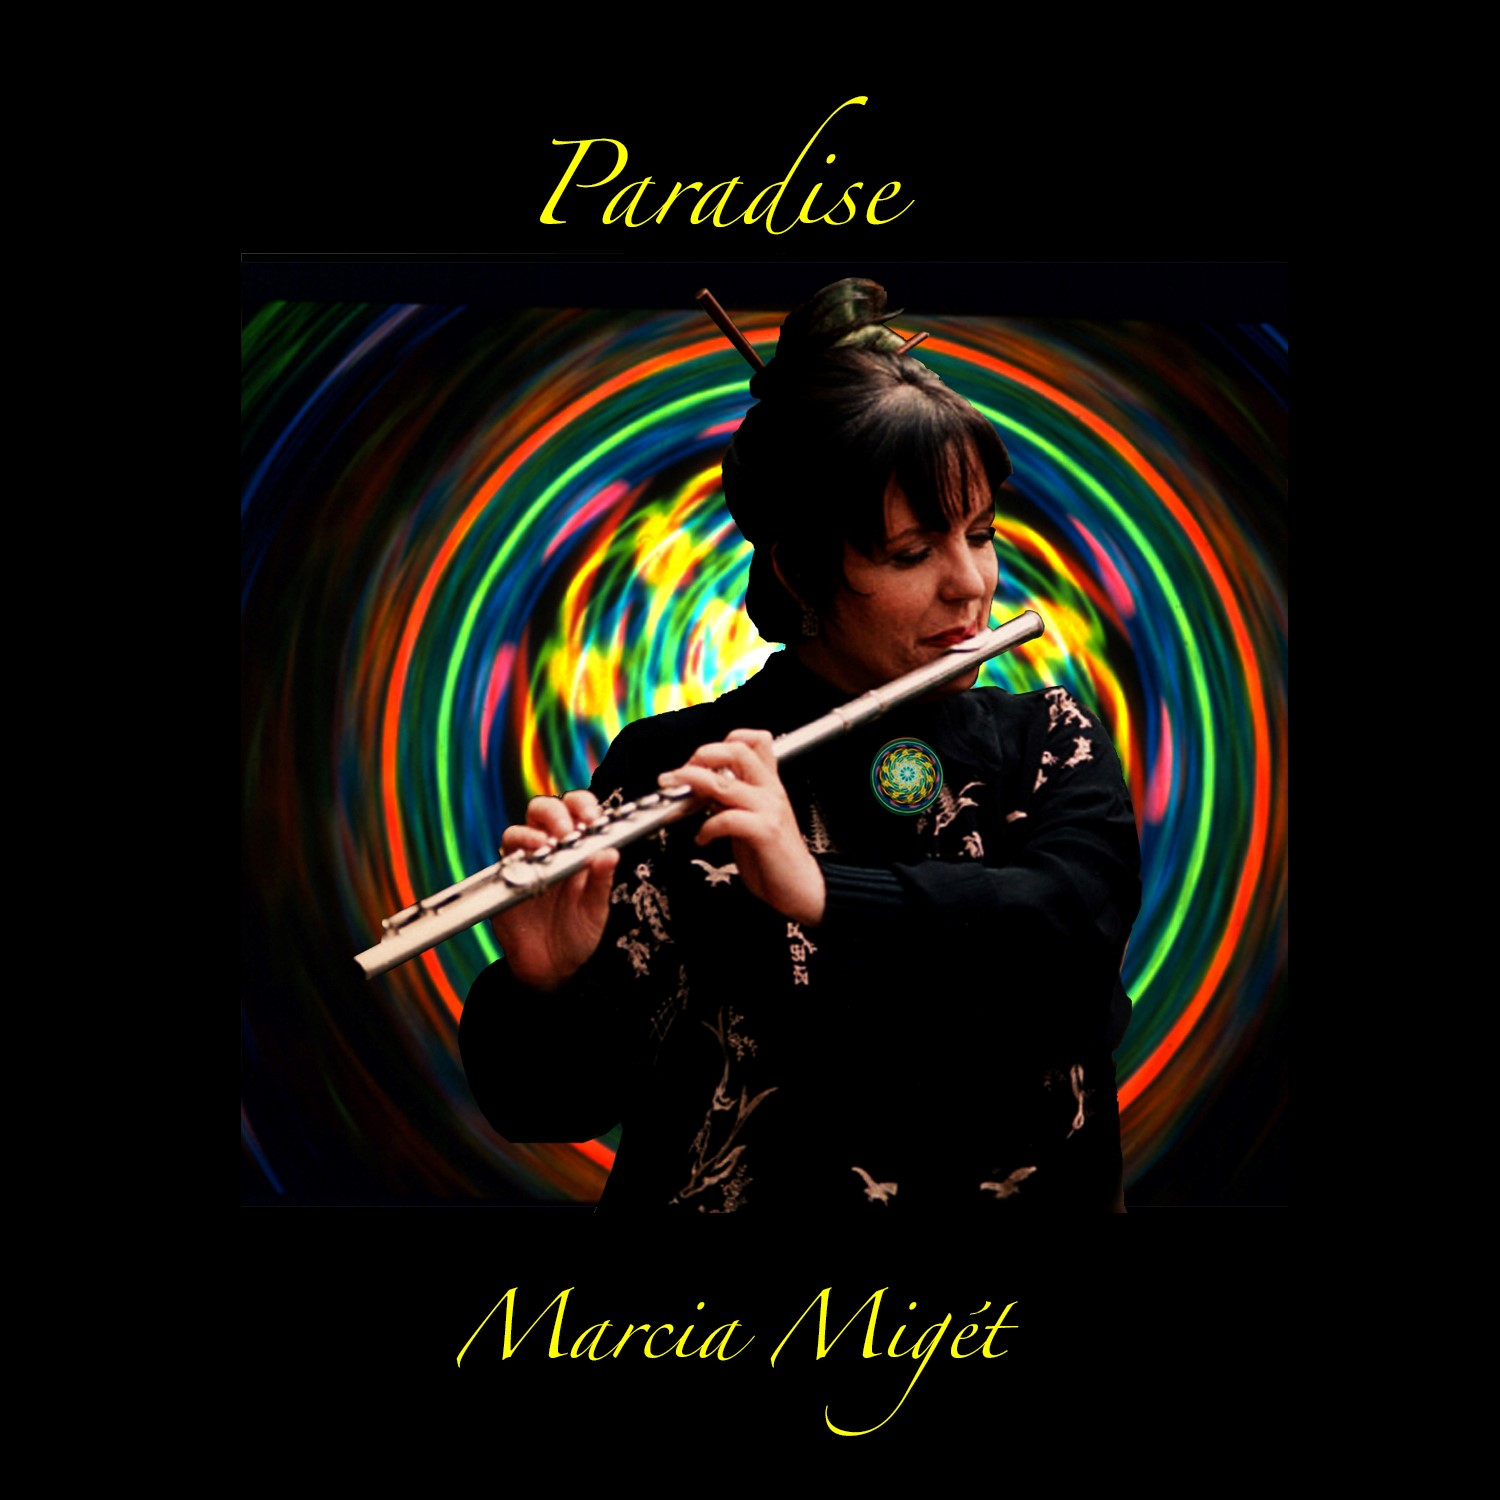 Listen to 'Paradise' by Marcia Miget